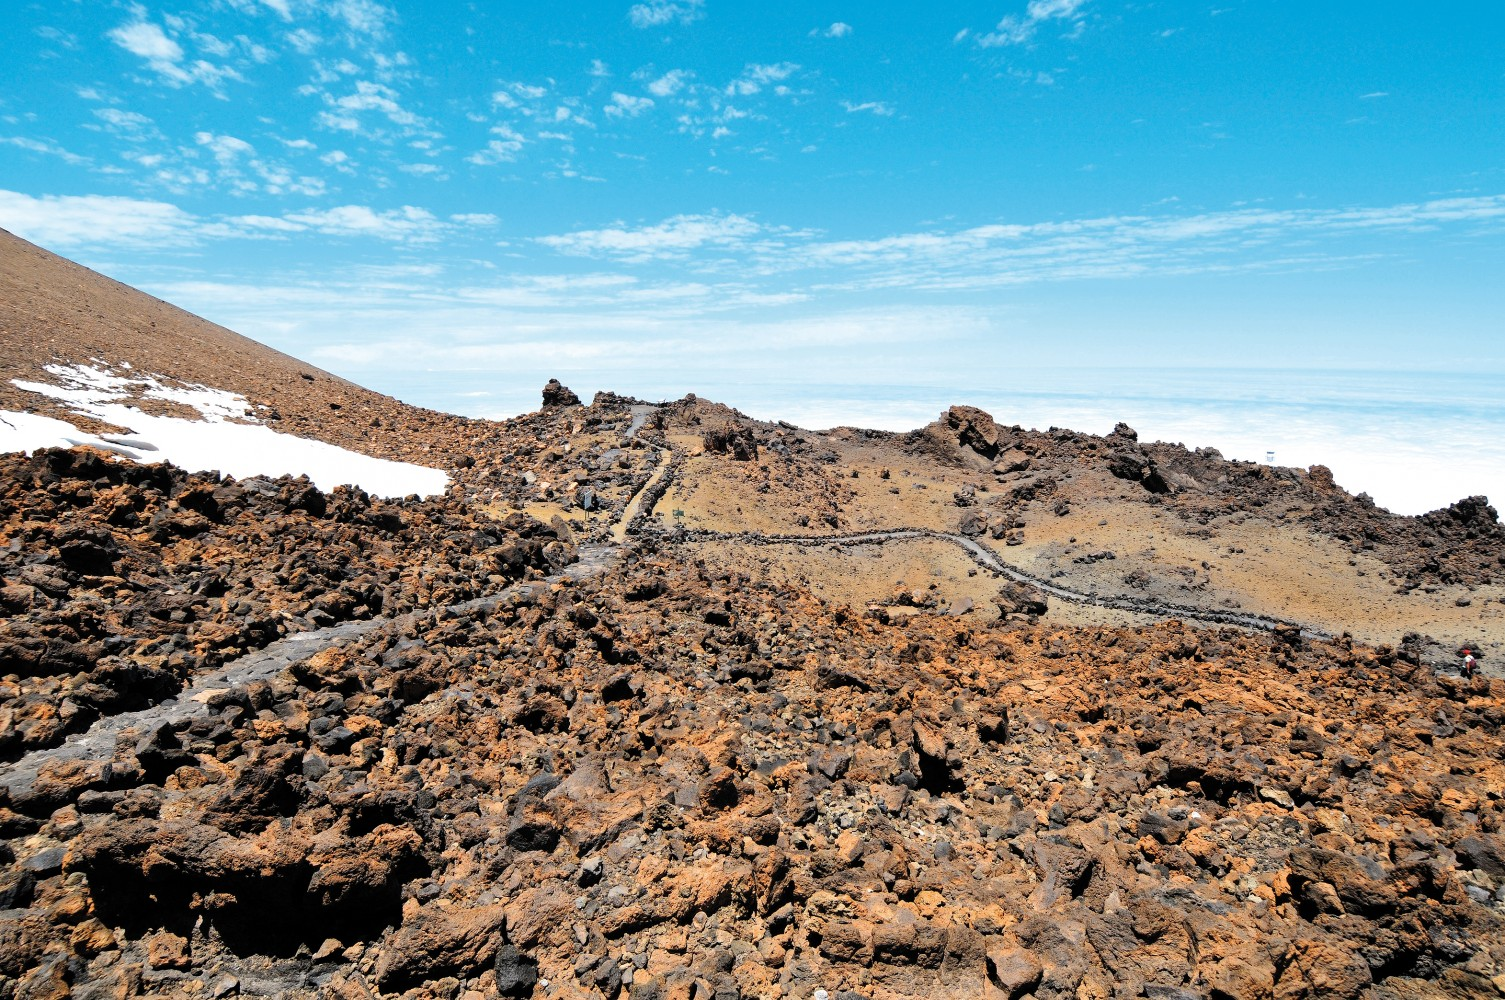 How to get up Mount Teide